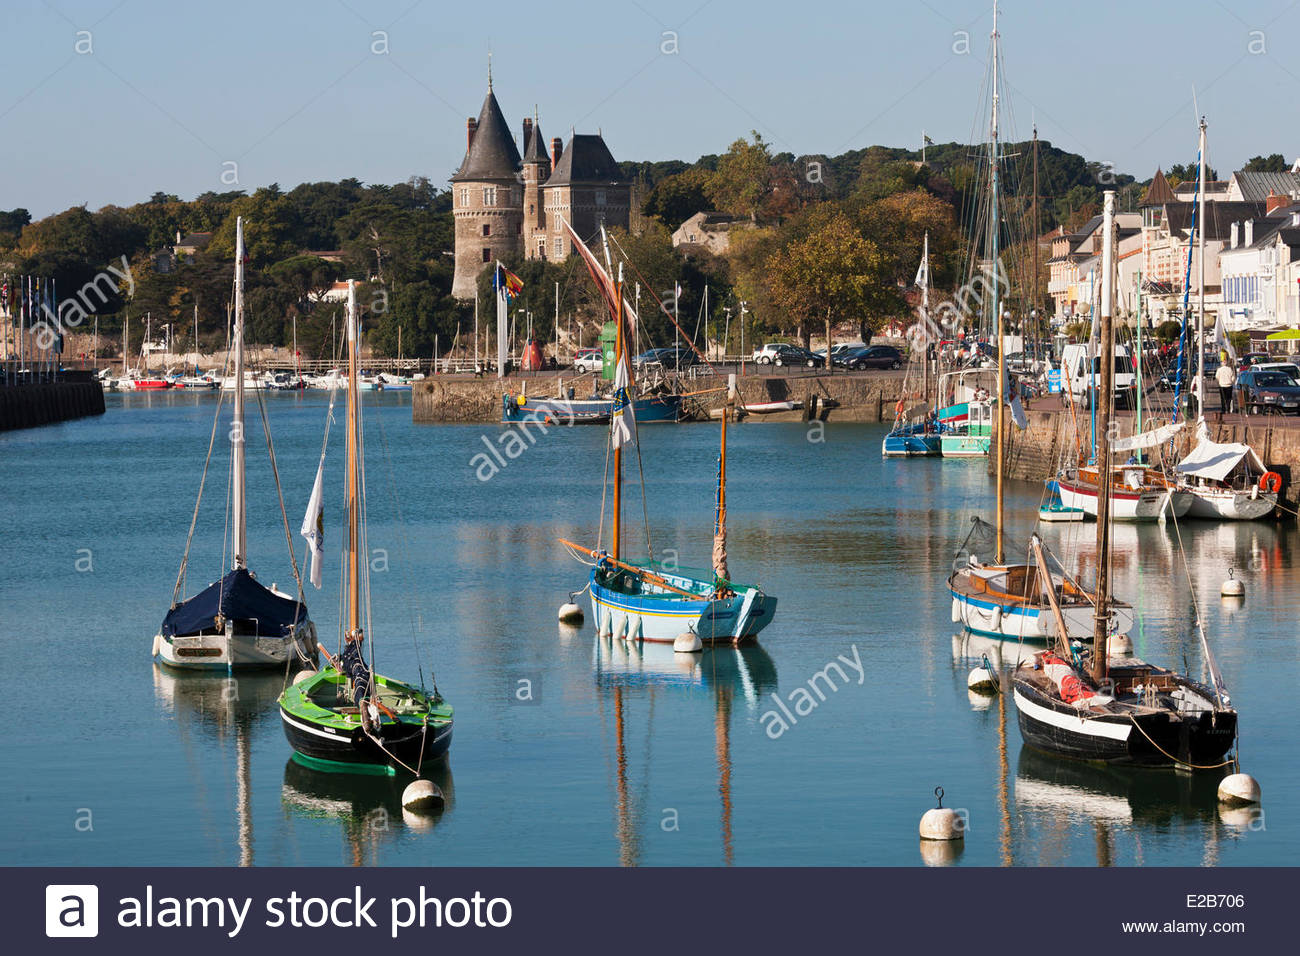 France, Loire Atlantique, Pornic, Old rigging the fishing port - Stock Image